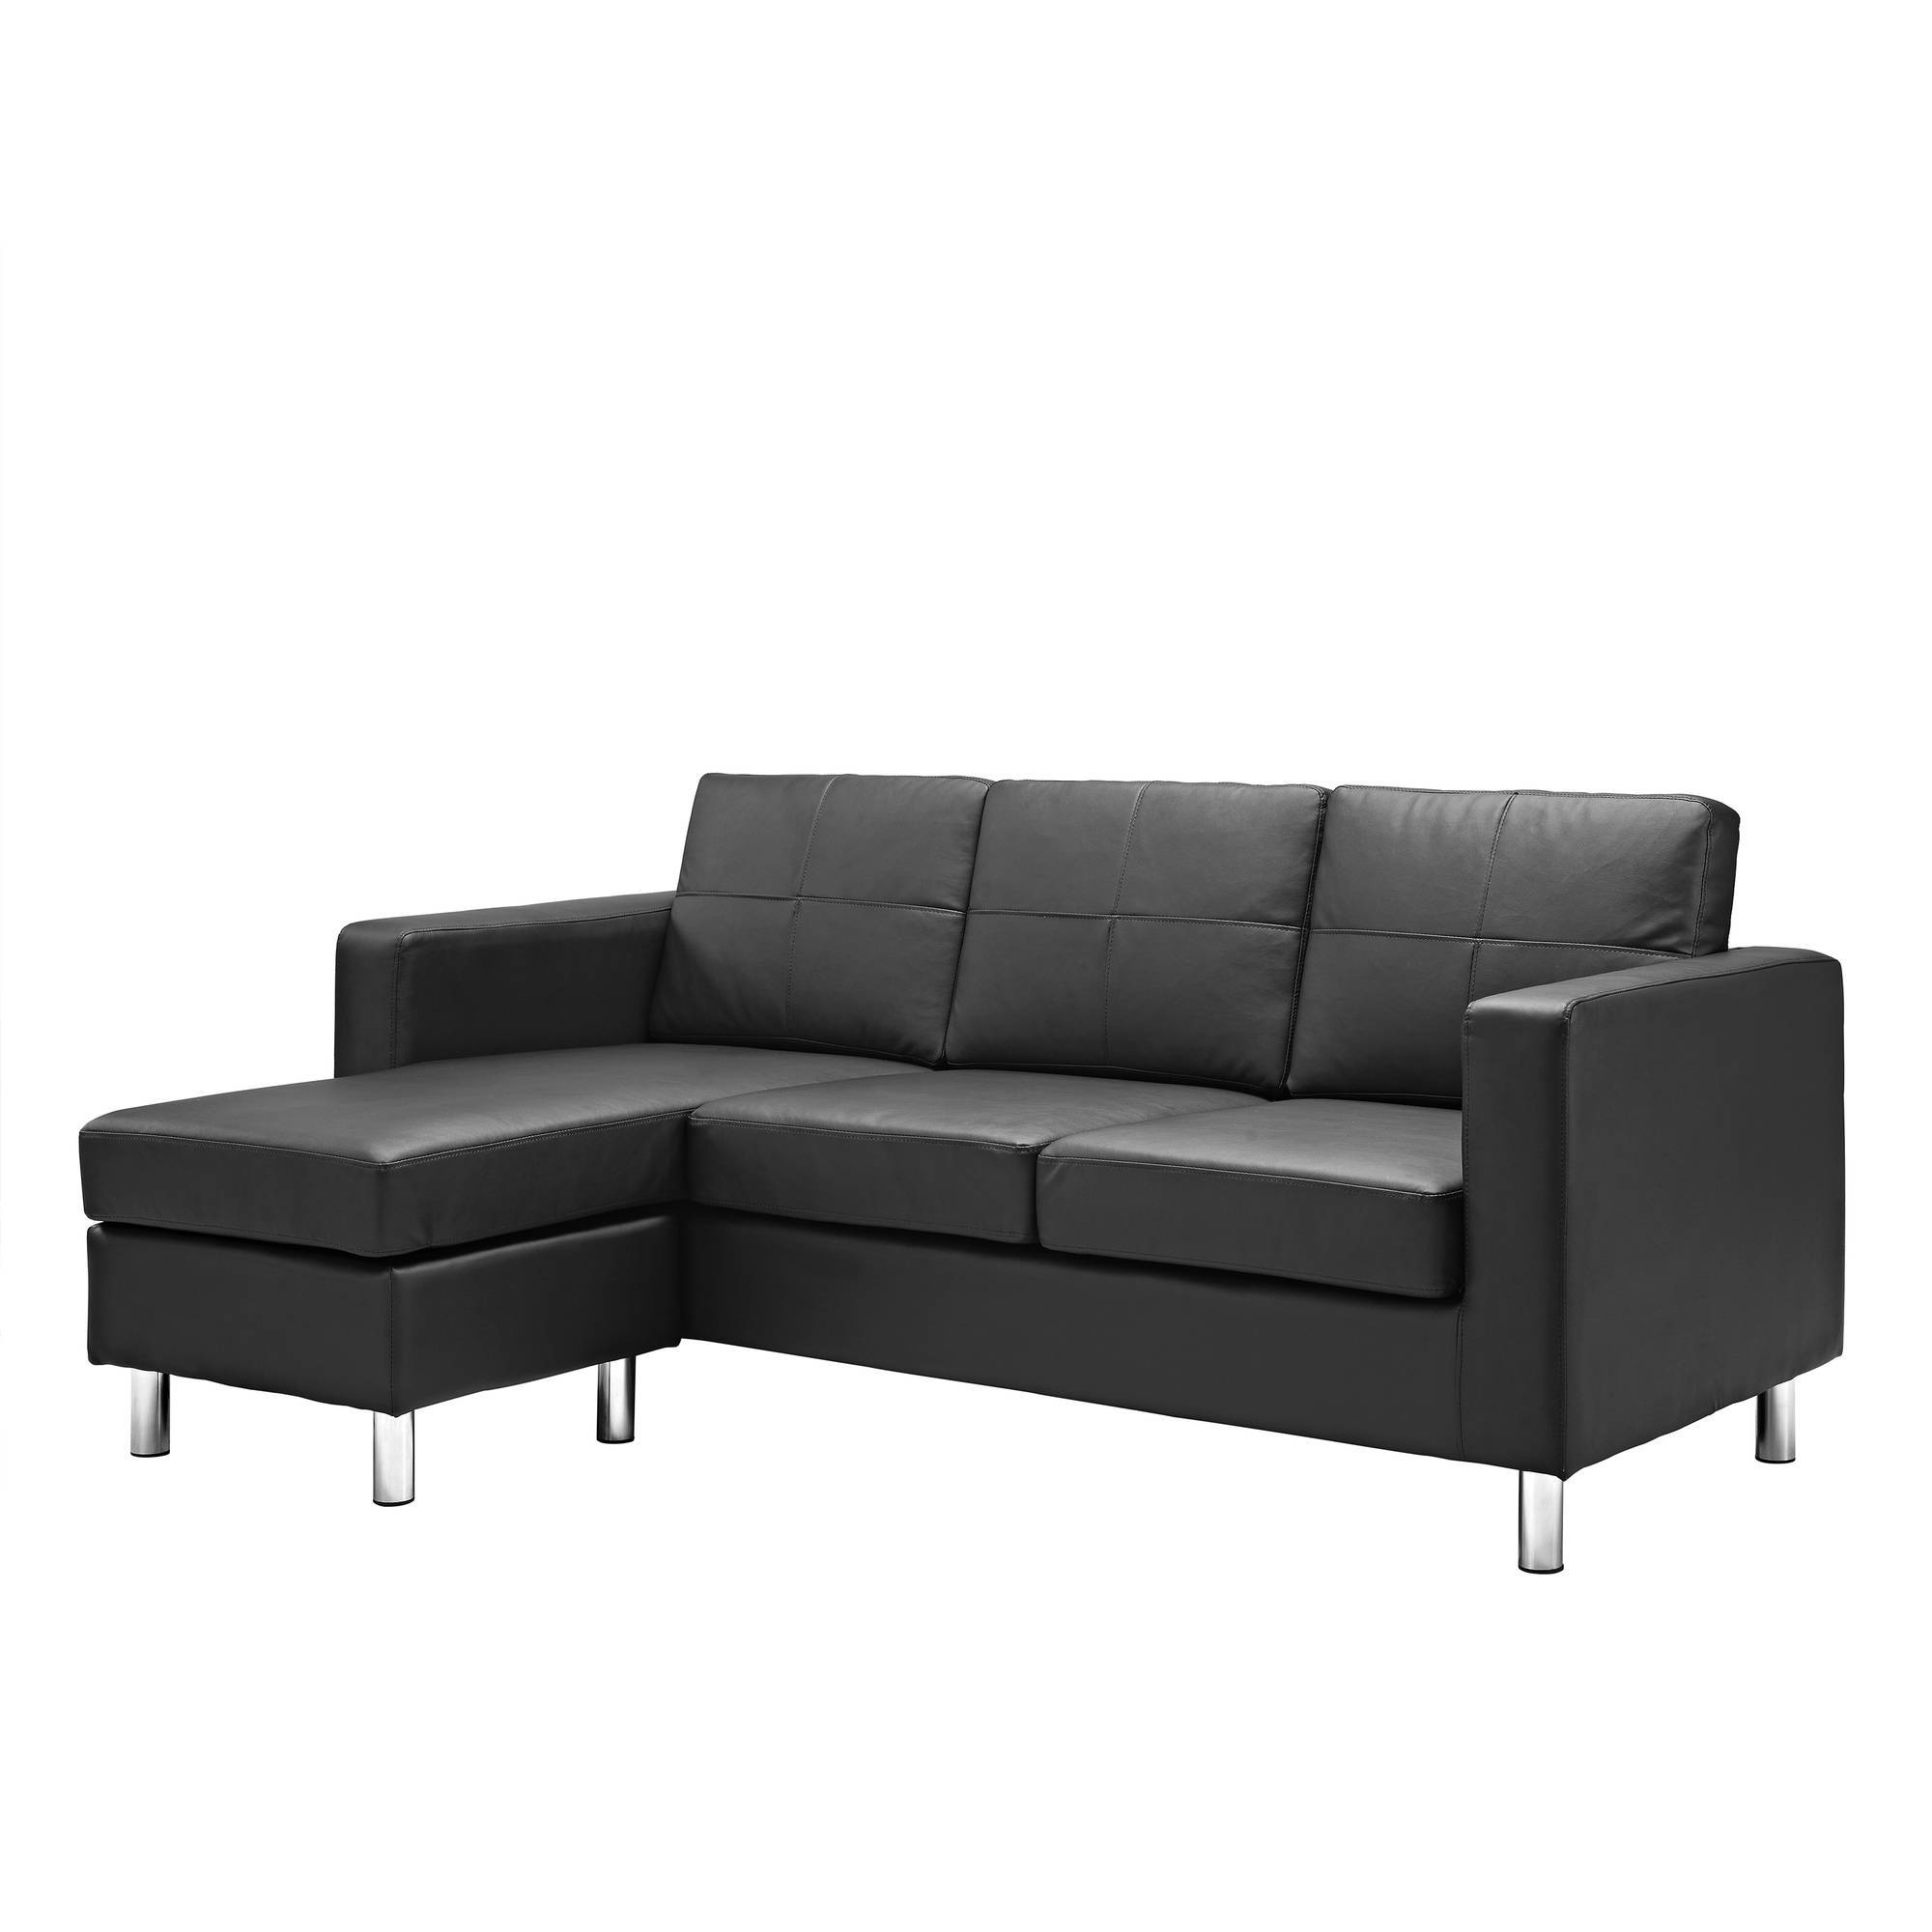 Dorel Living Small Spaces Configurable Sectional Sofa, Multiple in Condo Sectional Sofas (Image 8 of 30)